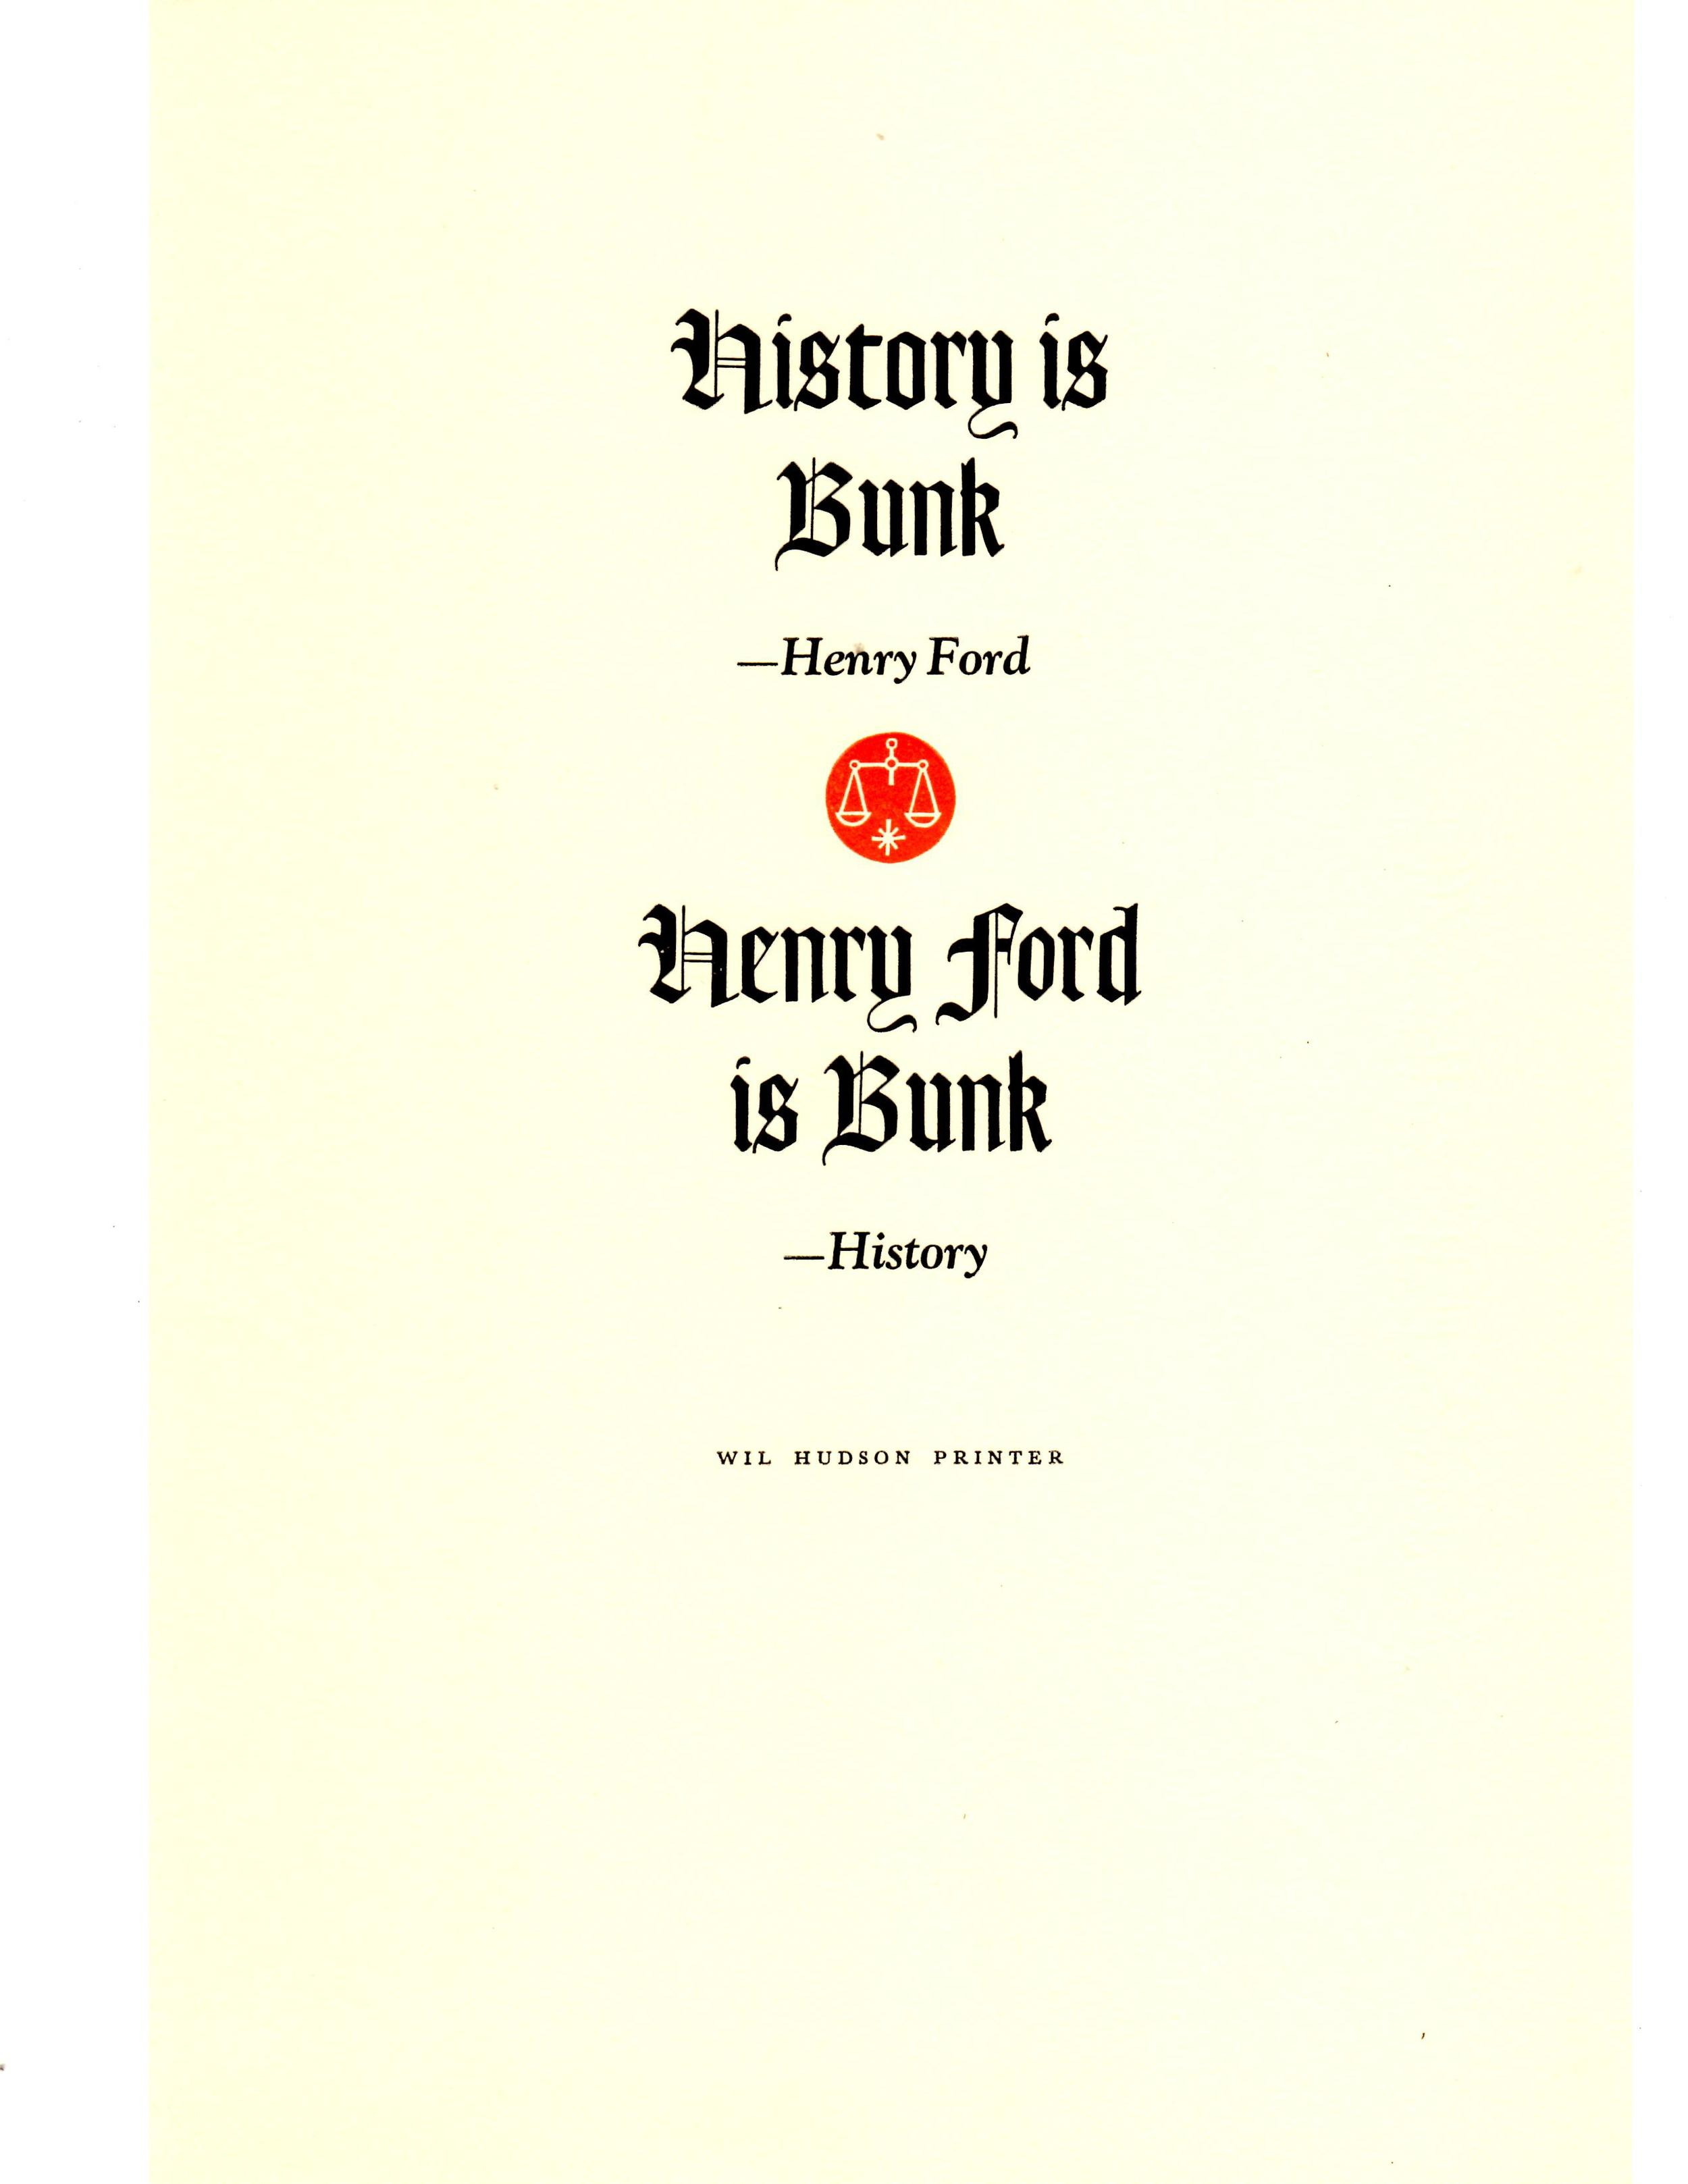 """Above:  Wil got a real chuckle out of """"History is Bunk, Ford is Bunk"""" He said , """"Aphorism by Wil Hudson""""  This was printed in about 1976."""